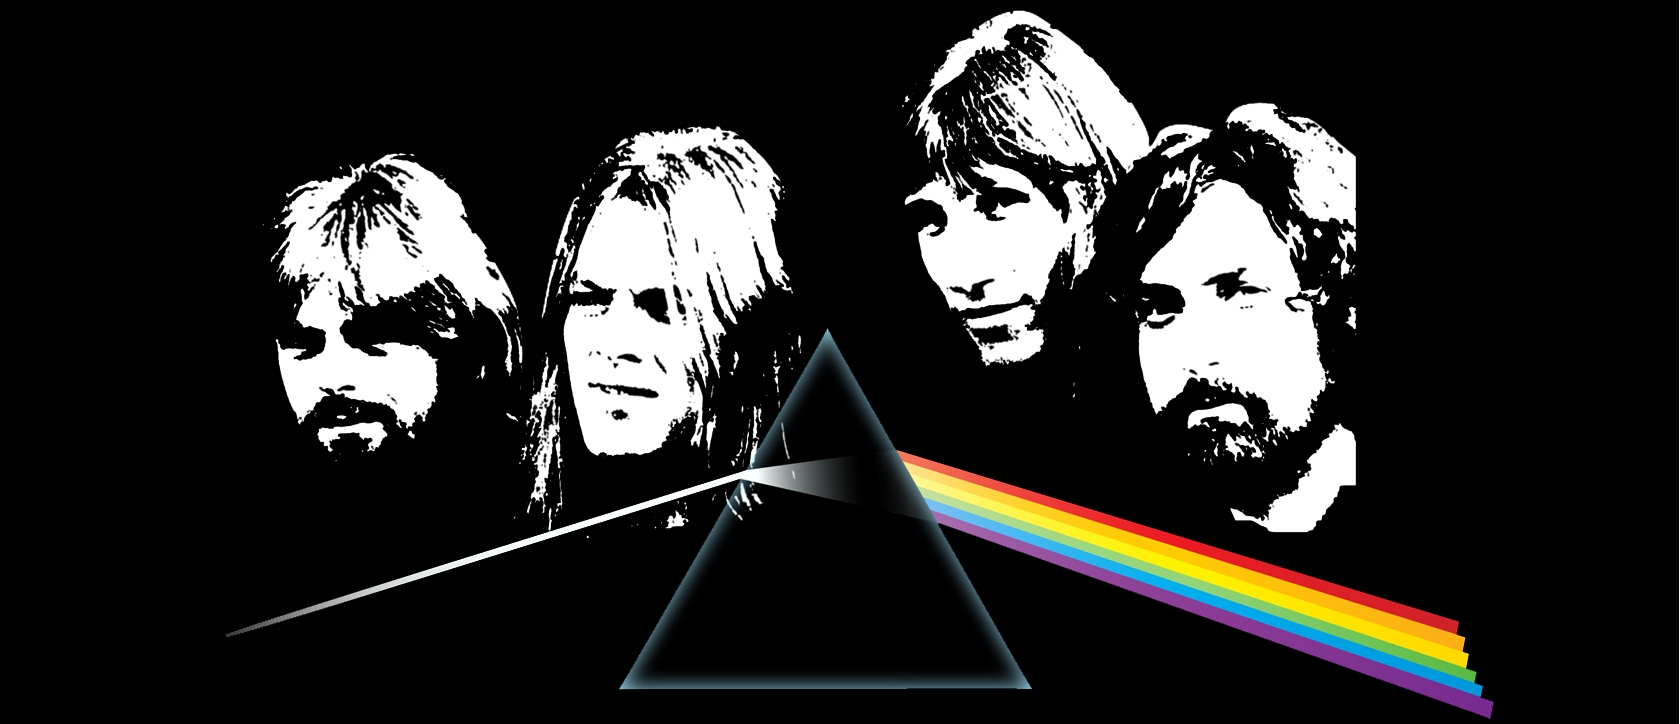 """an analysis of the philosophy in the lyrics of the song if by pink floyd In his contribution to pink floyd and philosophy: careful with that  (as tom  scharpling put it, """"if wish you were here is 'being in pink floyd sucks,' animals is  'humans suck  in """"dogs,"""" david gilmour, who sings the first half of the song,   """"sheep,"""" in other words, returns listeners to the world of """"dogs,""""."""